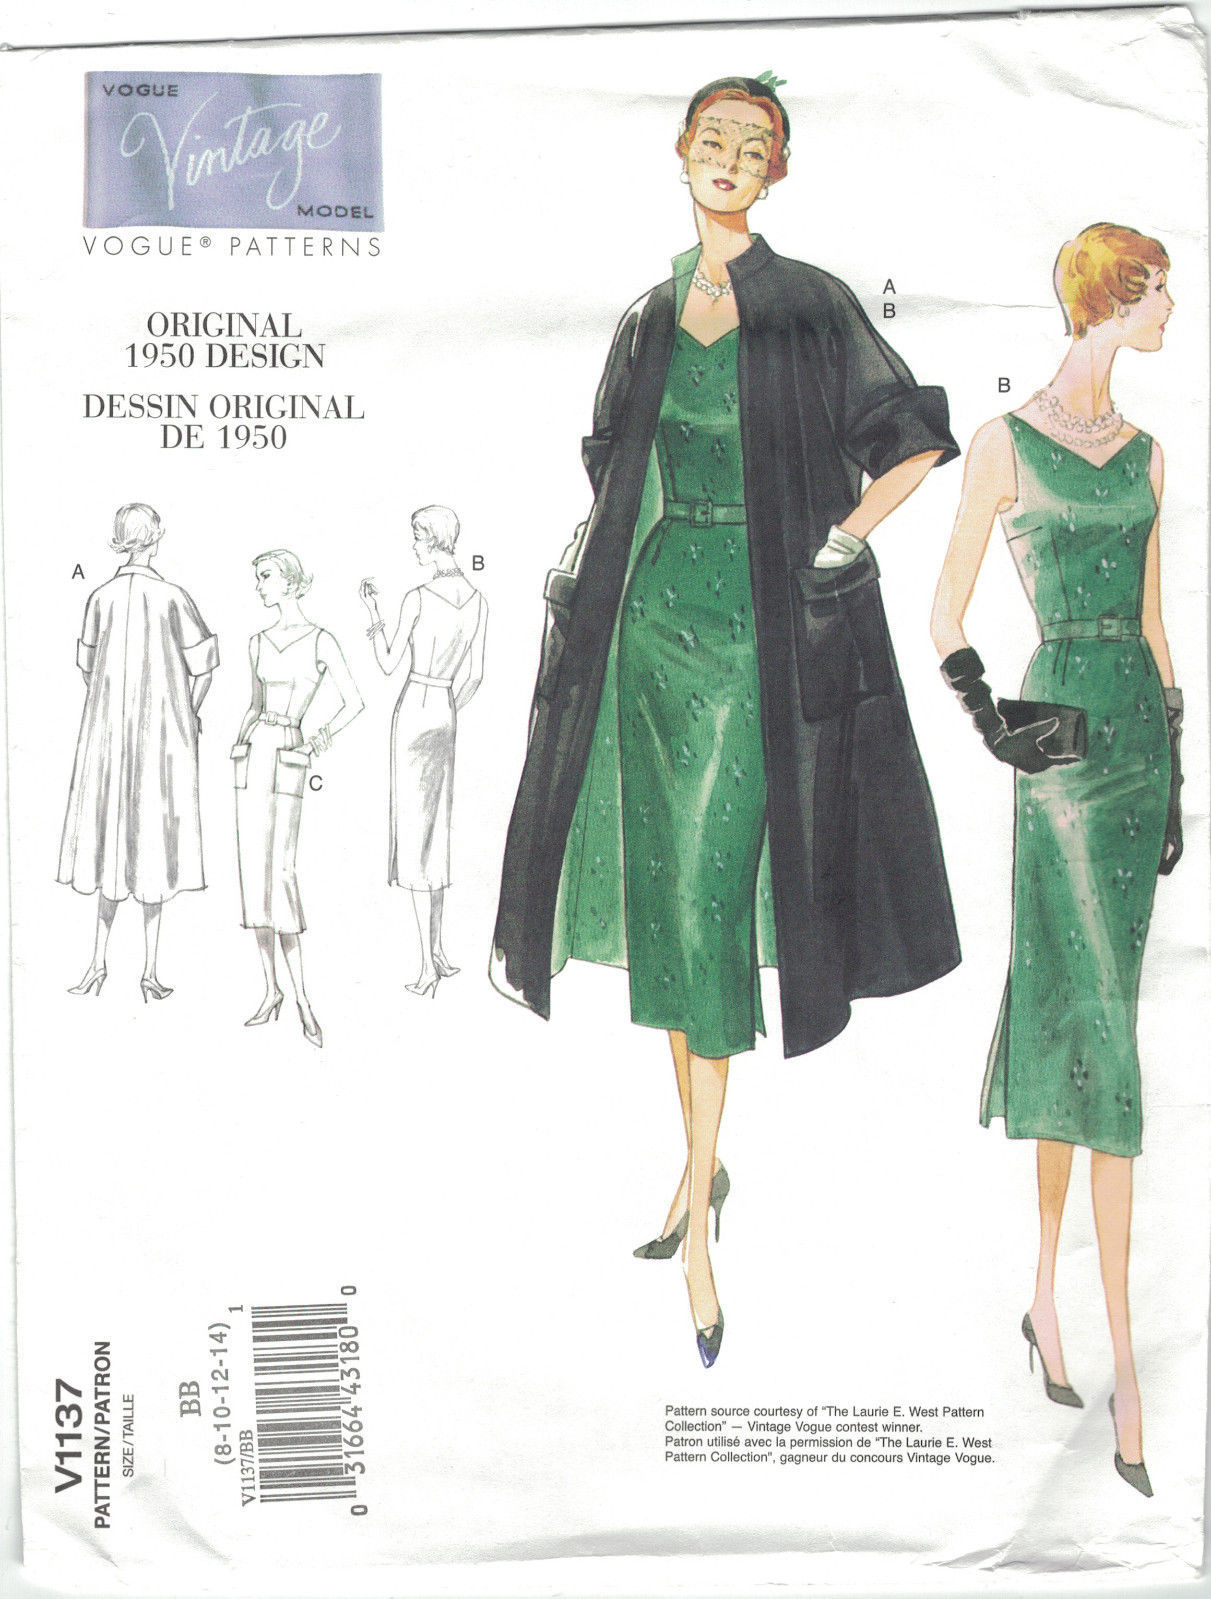 Primary image for Vogue Vintage 1137 Coat & Slim Dress 1950 Reissue Size 8 10 12 14  Pattern Uncut